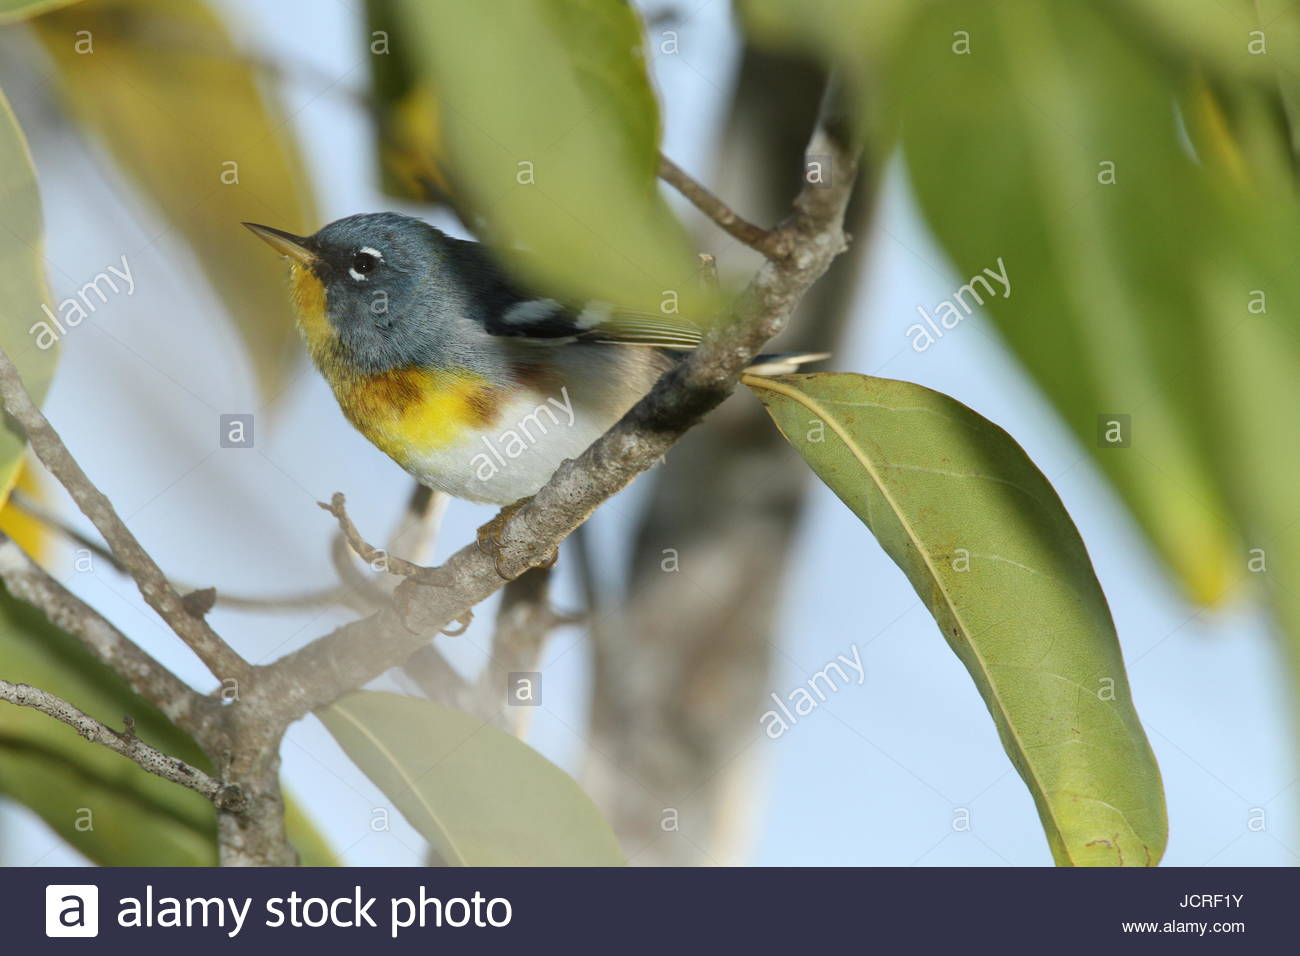 A northern parula, Setophaga americana, perching on the branch of a tree. - Stock Image